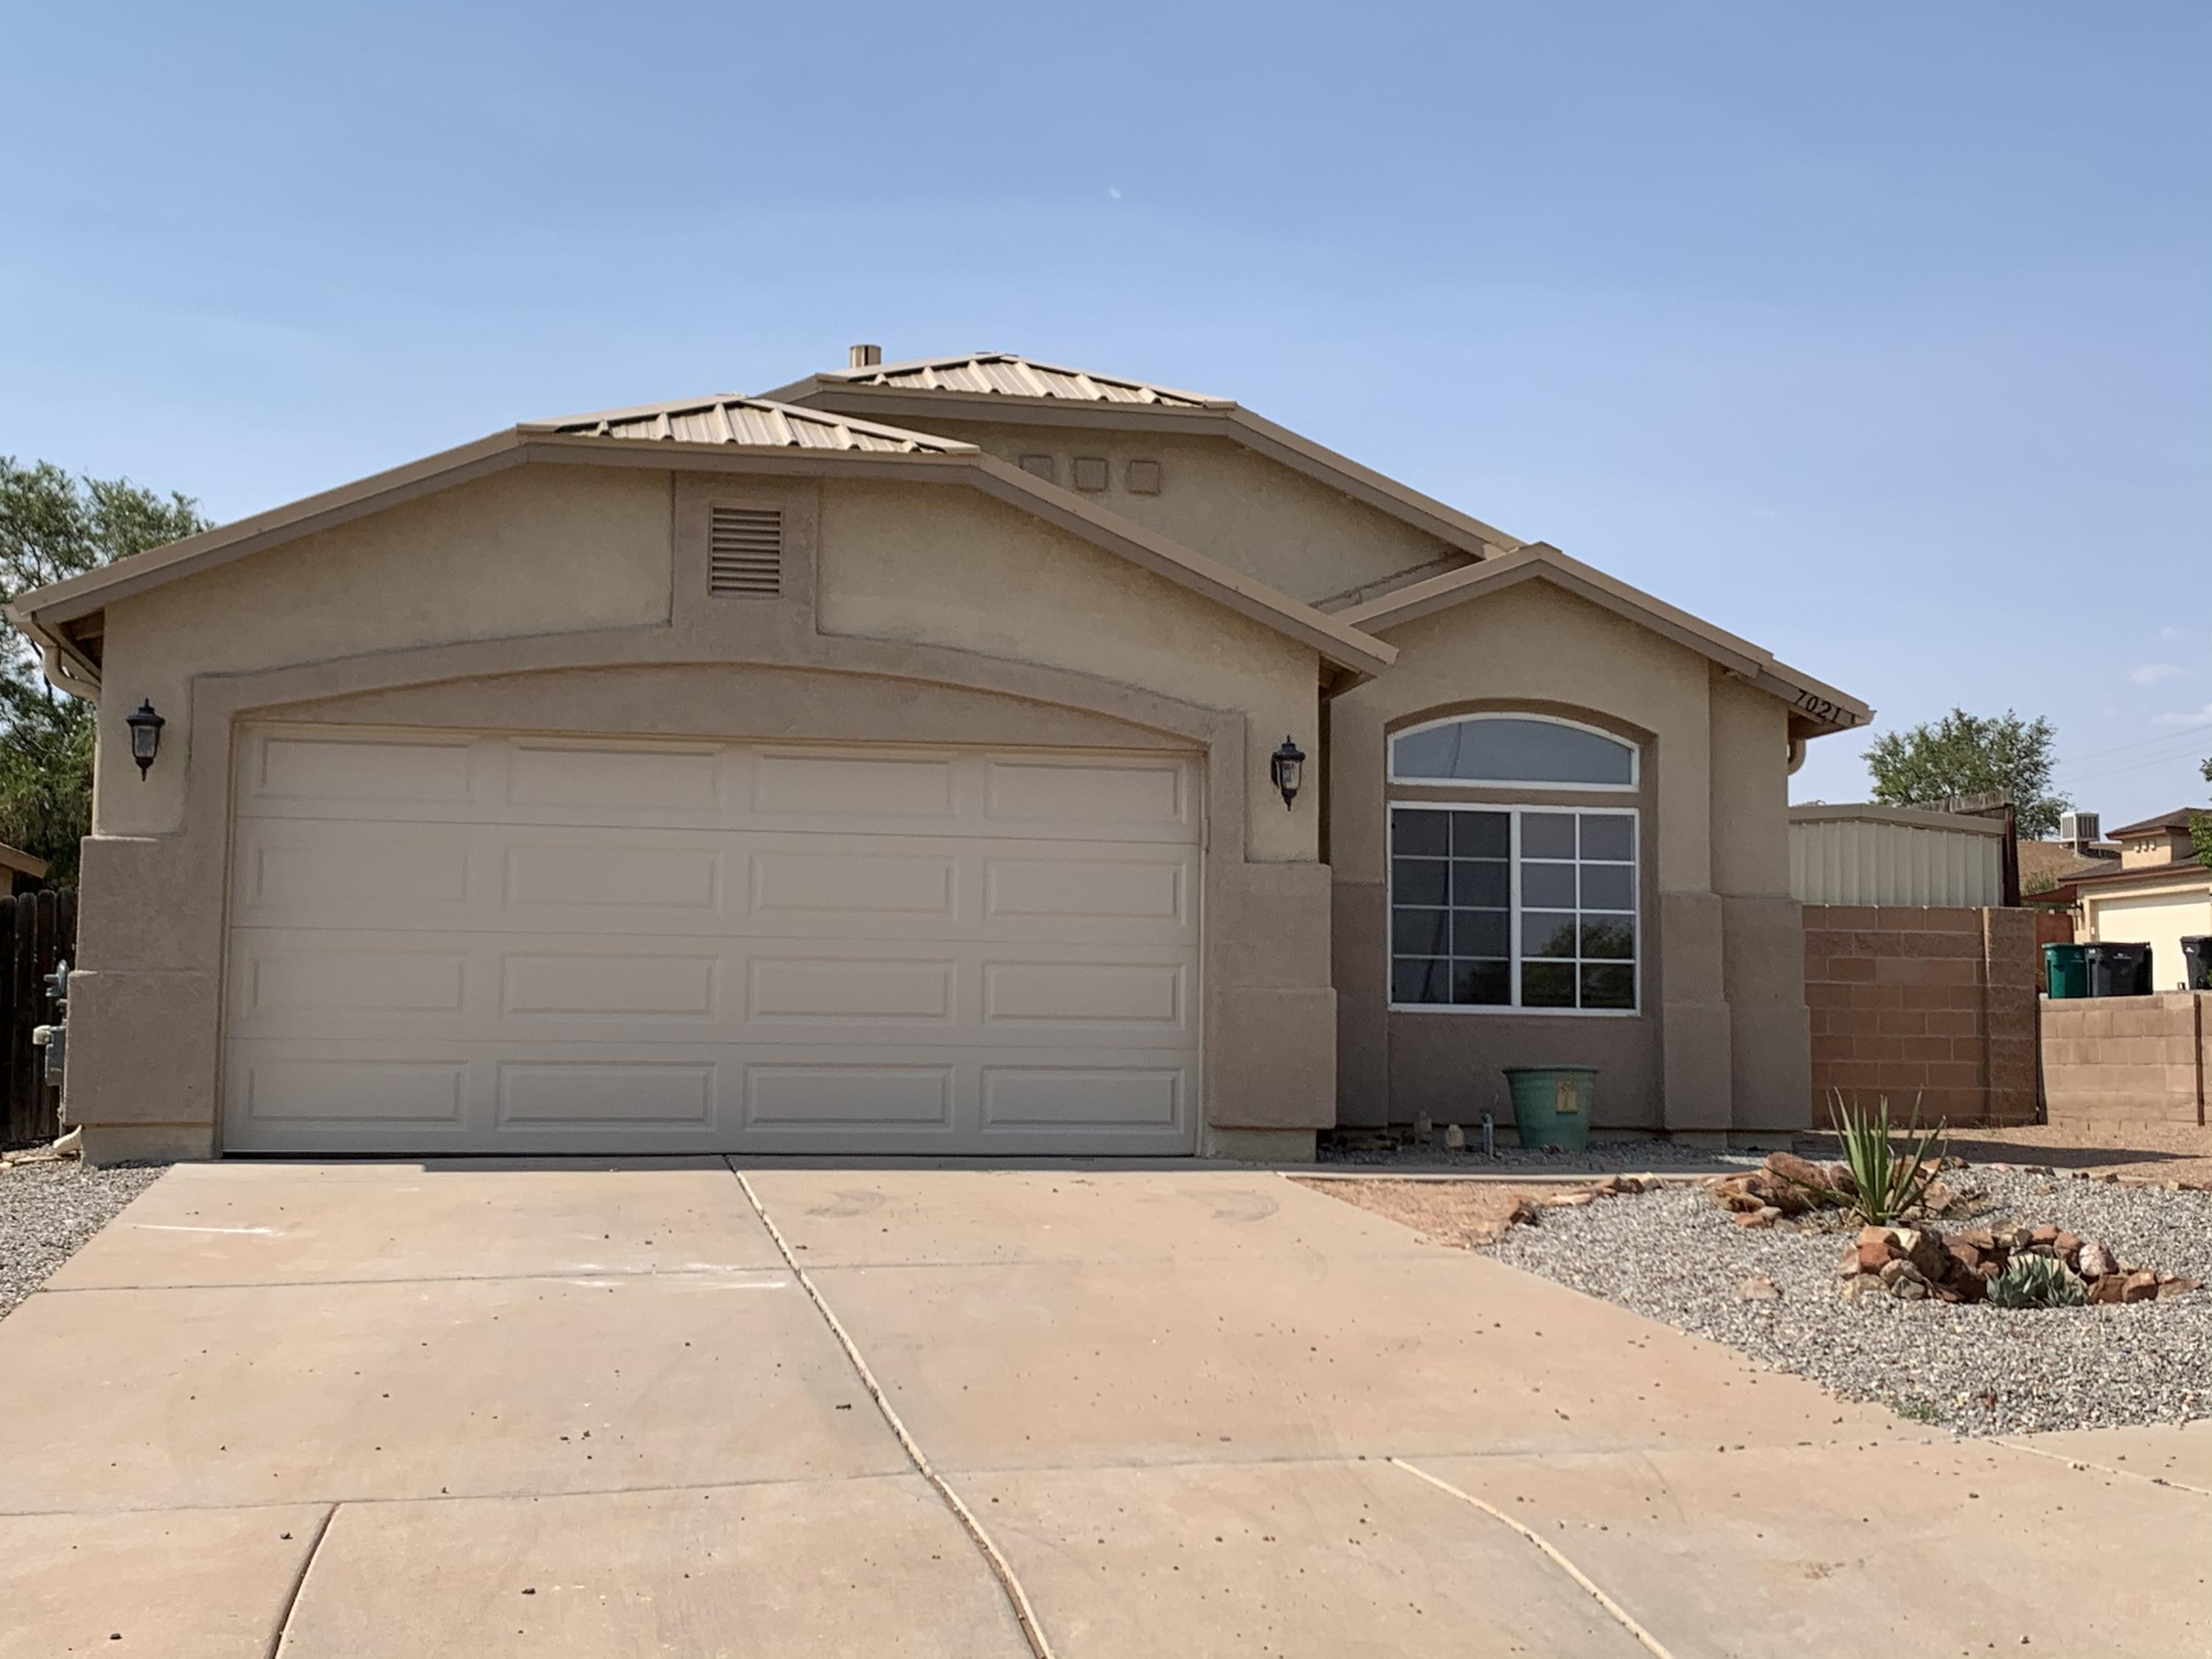 Corner Lot! Shed with electricity conveys! New water heater! New Metal Roof!   Wood Floors! Wood Blinds! Travertine Tile in MBA & Laundry Area! Stainless Steel Microwave & Stove! LED lighting in the entry & dining room! Tiled Hall Bathroom! New Toilets! Fresh Paint! Seamless Gutters! Front Yard xeriscaping! New insulated garage door, pad & belt! Brick wall & custom gate! Sidewalked! Waterfall feature! Built up patio! Dog run & fencing & cement walkway! Raised up planter beds! New LED solar outdoor lights! ELASTOMERIC stucco paint with lifetime guarantee! Front & Backyard Moss rock! Top of the line Trane a/c with allergy filtration and wifi humidity control!